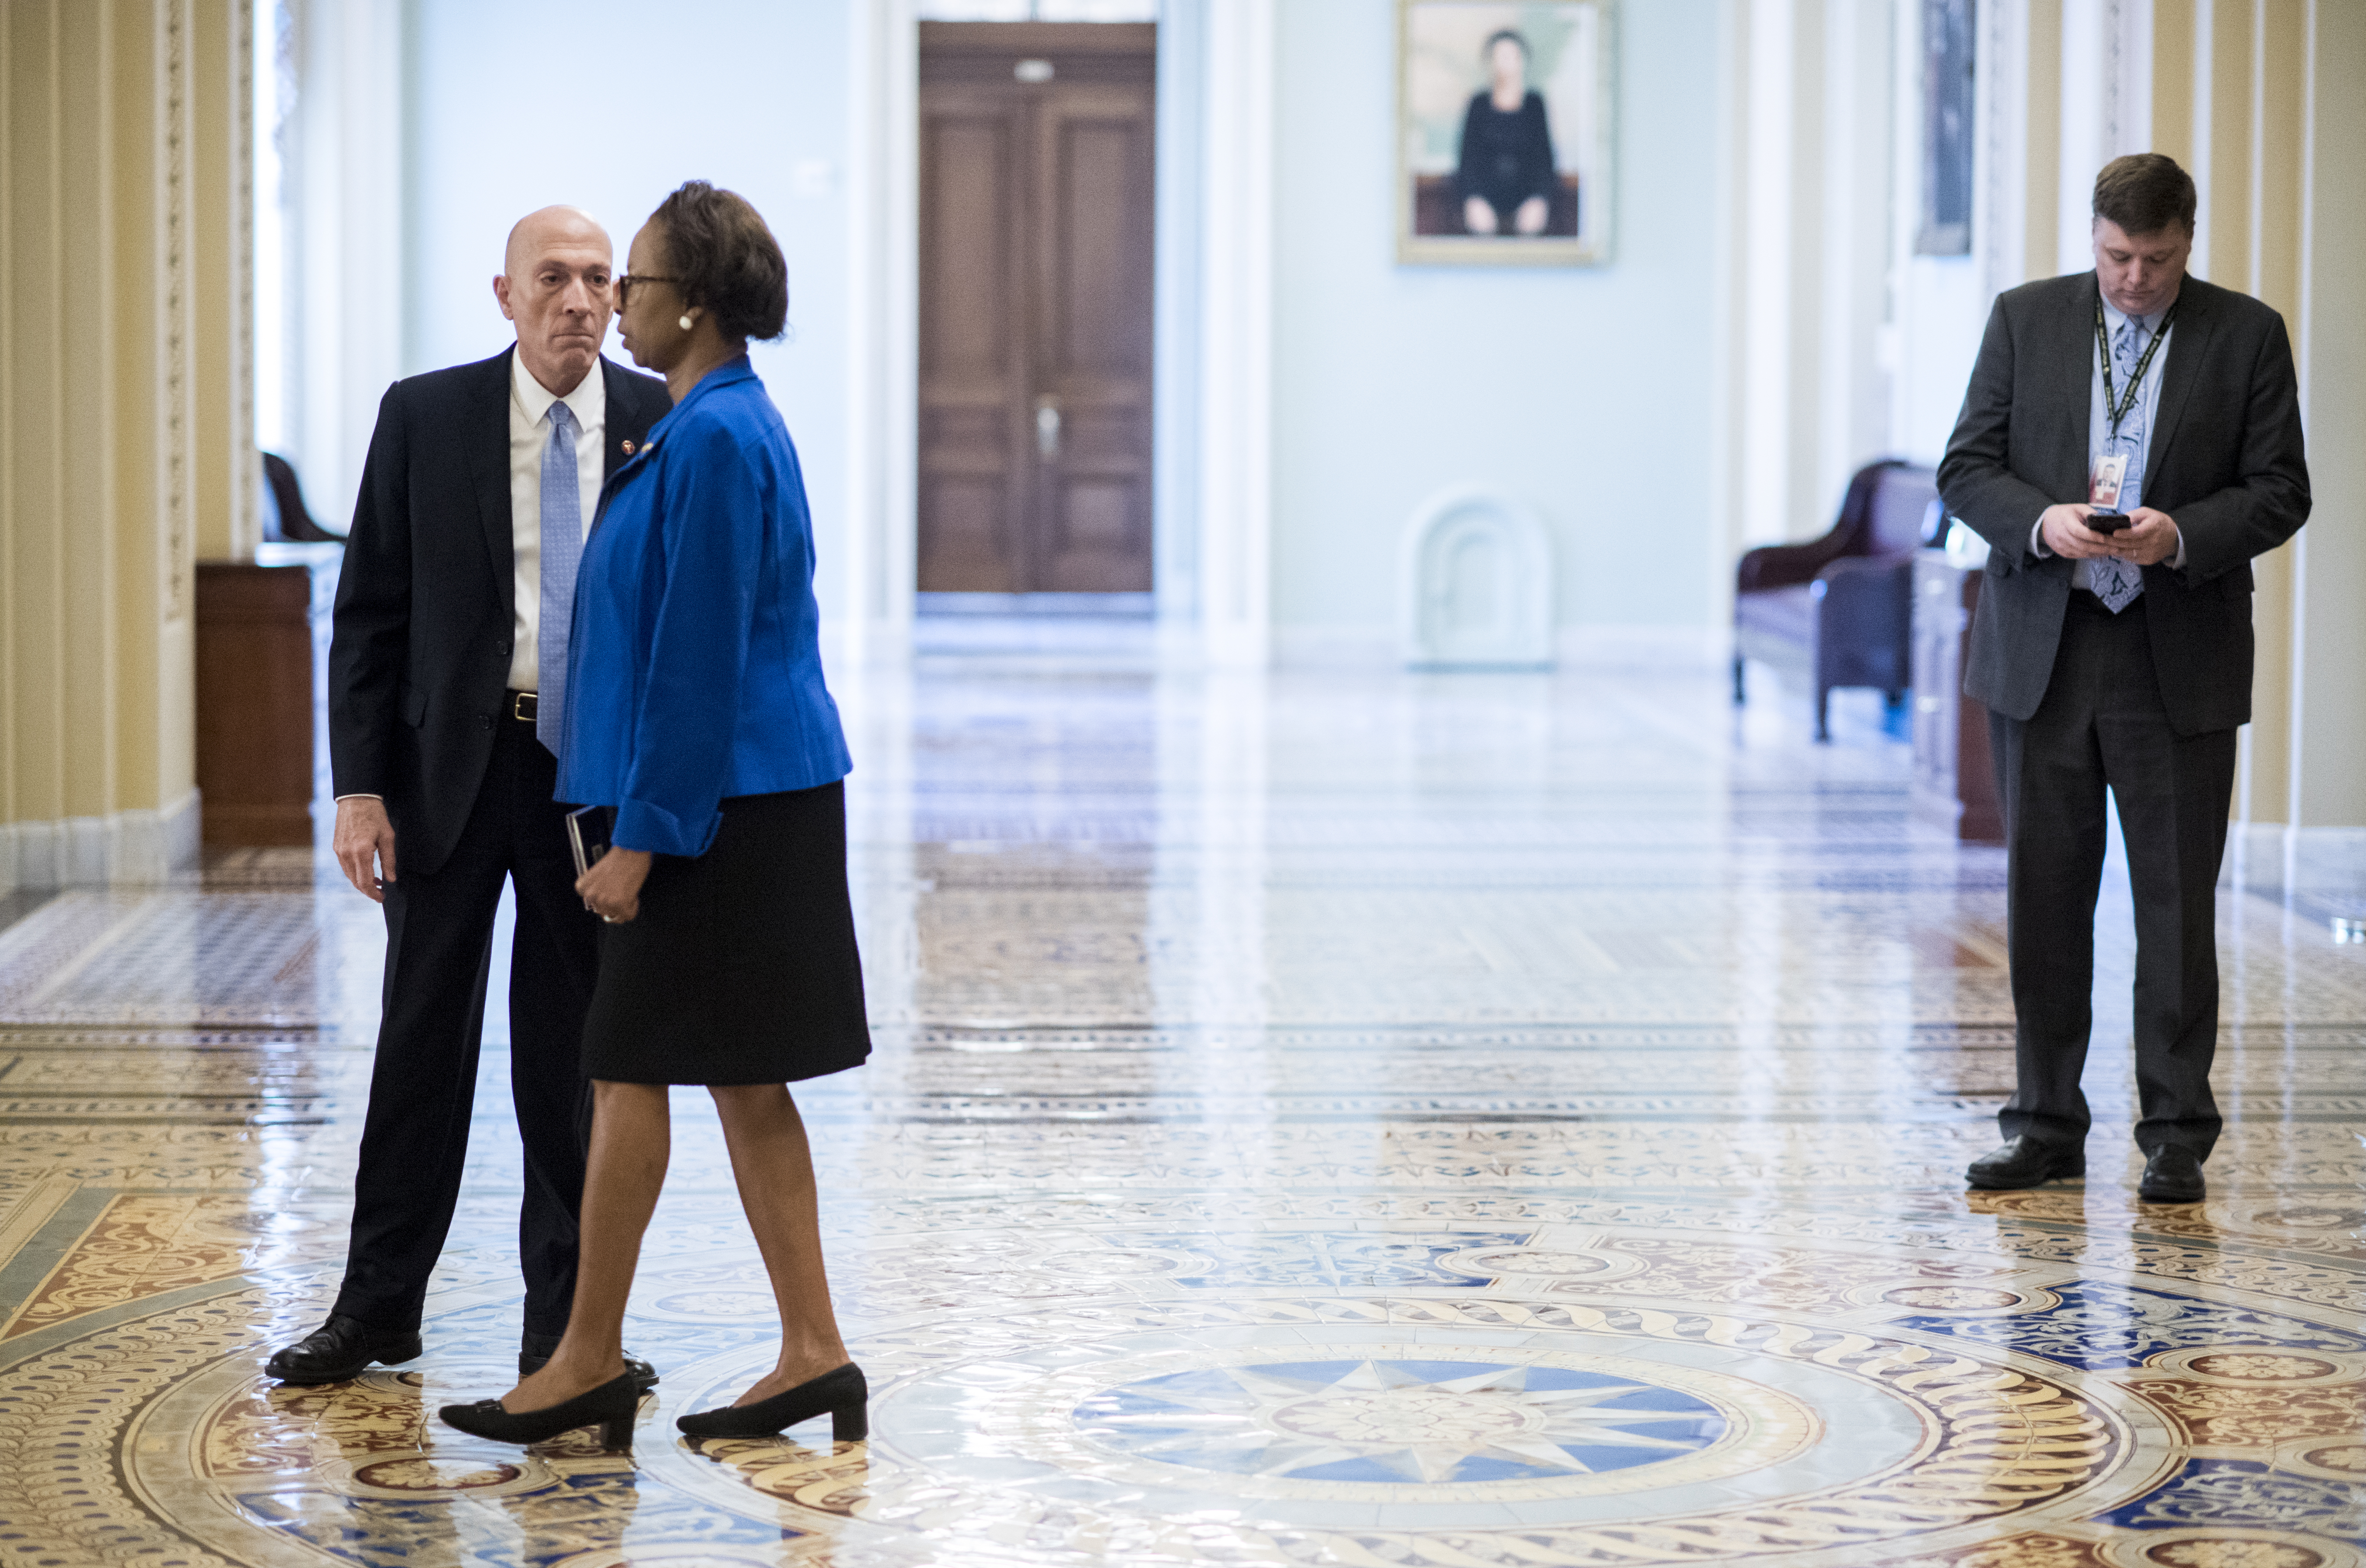 UNITED STATES - JANUARY 15: Sergeant at Arms of the U.S. House of Representatives Paul Irving and Clerk of the United States House of Representatives Cheryl Johnson walk through the Ohio Clock Corridor in advance of the tramission of the artciles of impeachment from the House to the Senate on Wednesday, Jan. 15, 2020. (Photo By Bill Clark/CQ Roll Call)